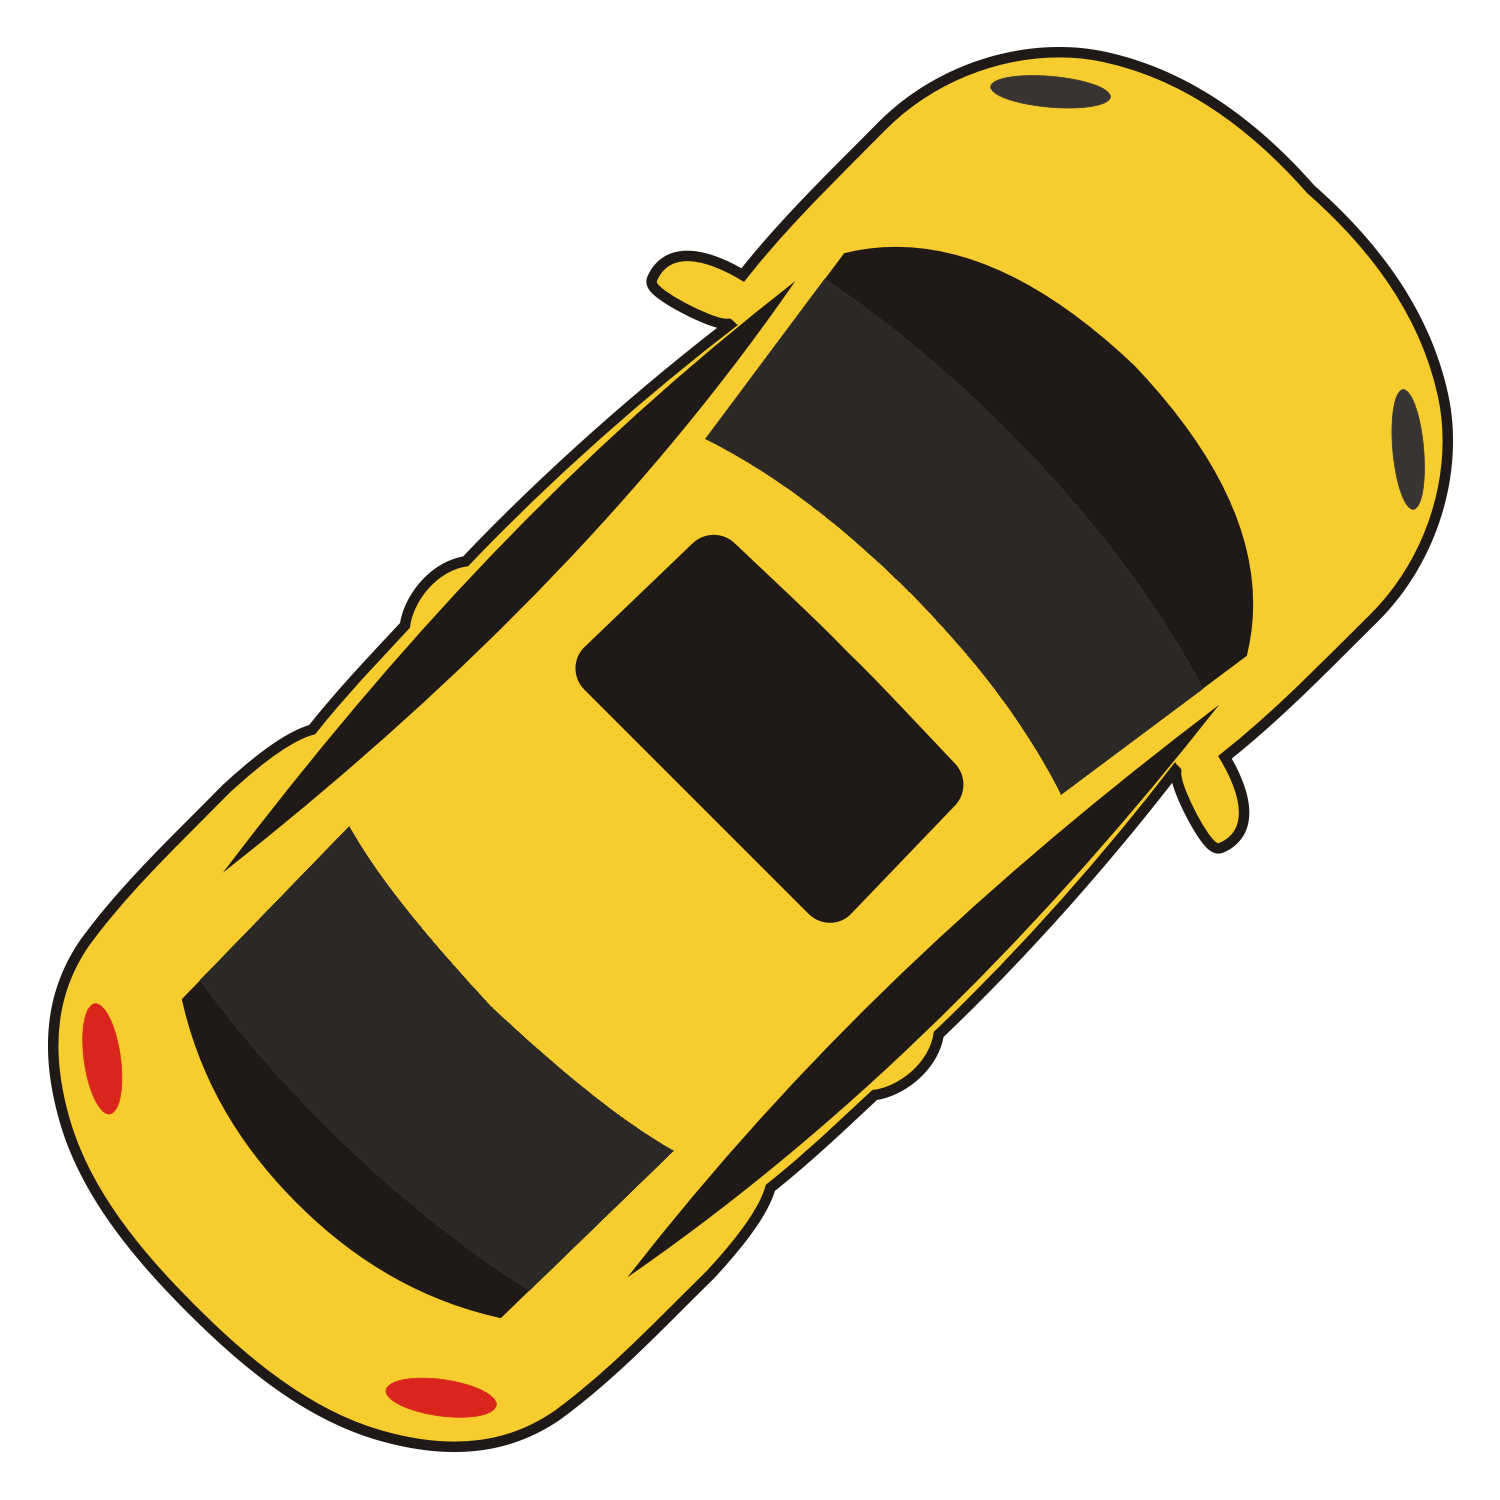 13 Car Top View Vector Icon Images